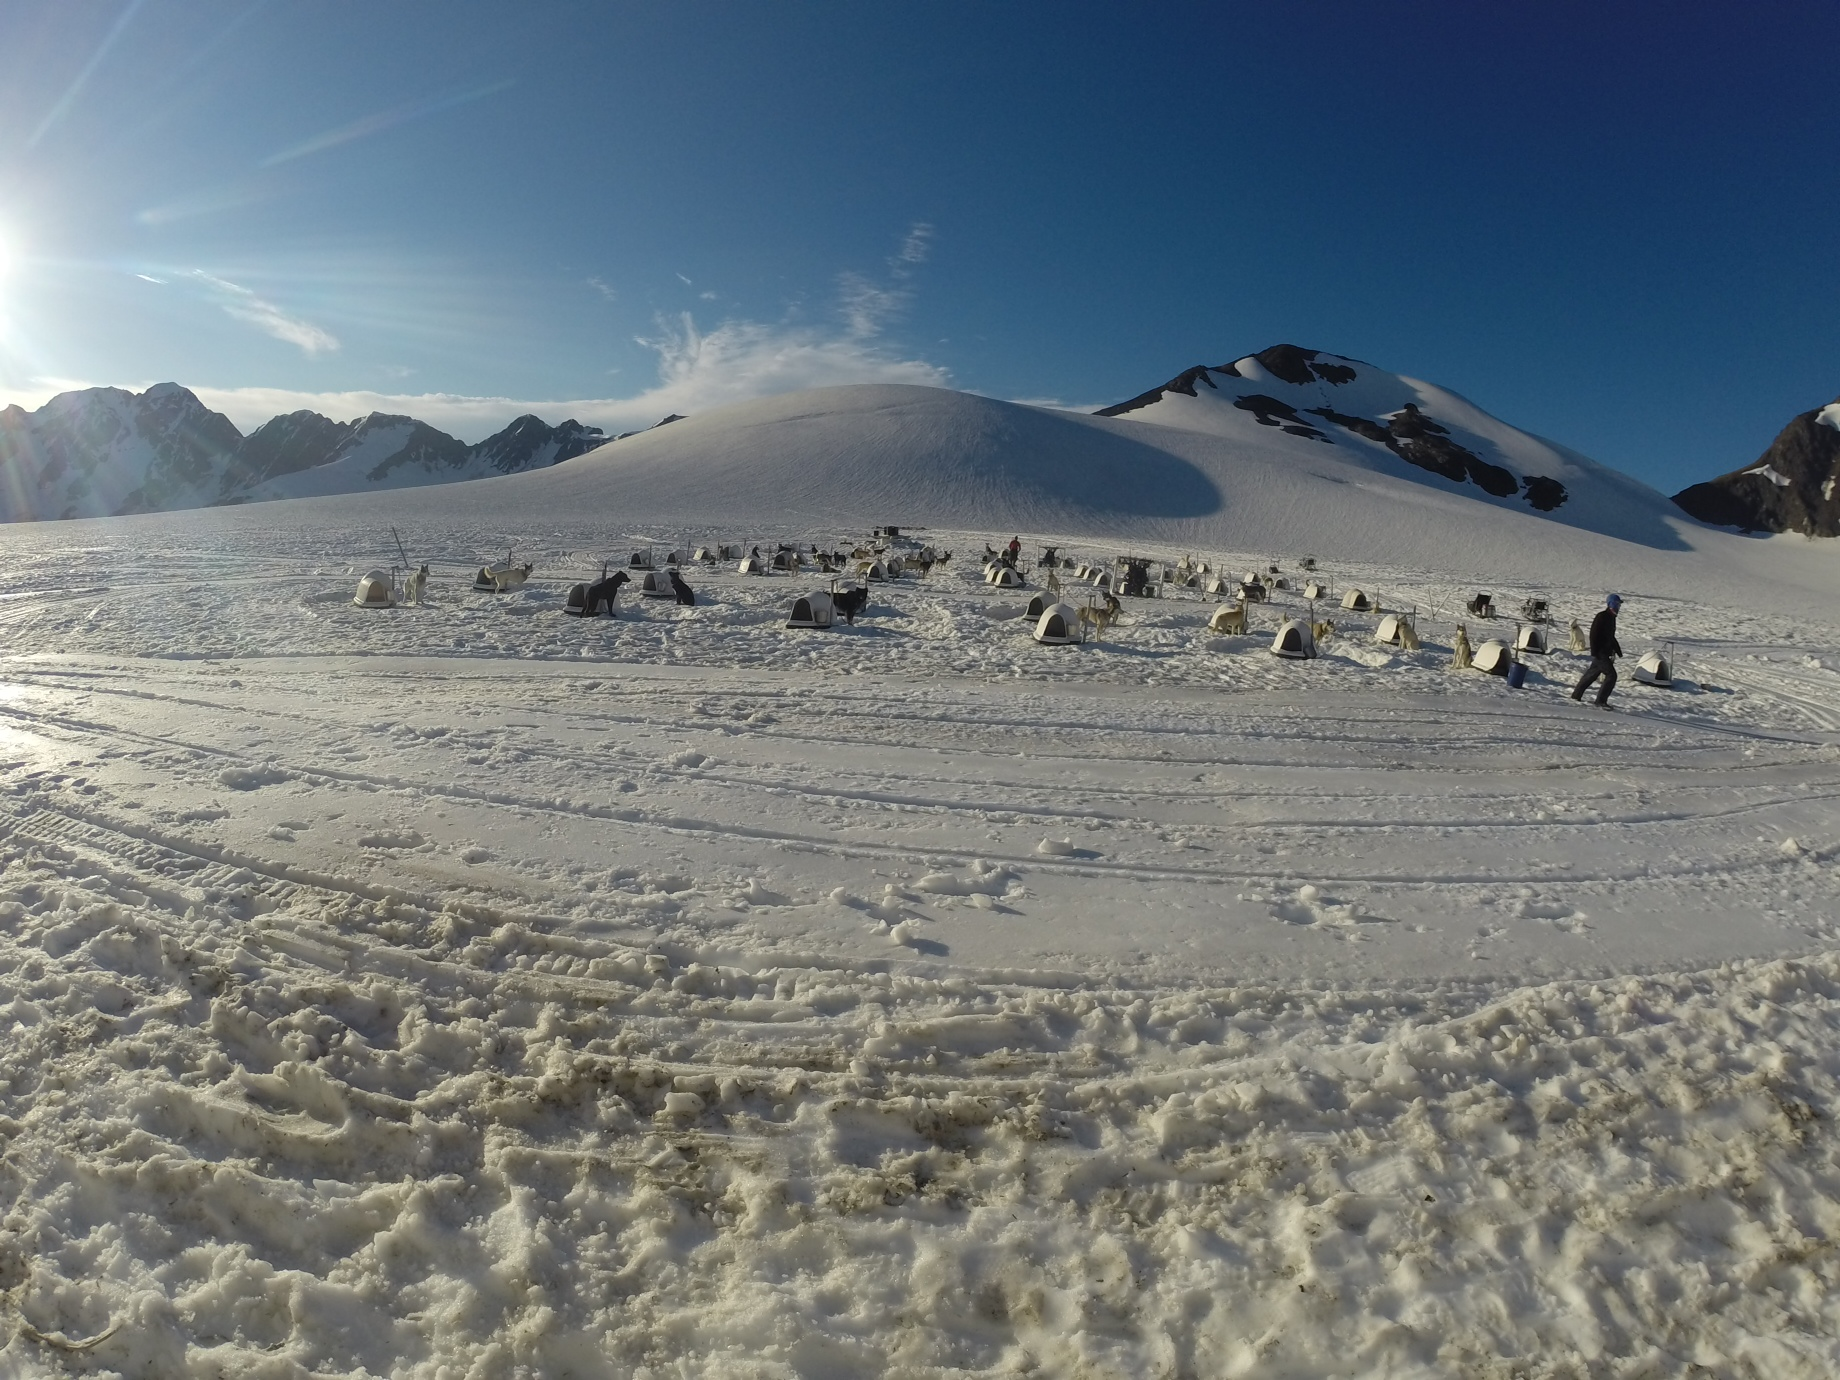 A sunny morning looking out towards the dog yard at Punch Bowl glacier.